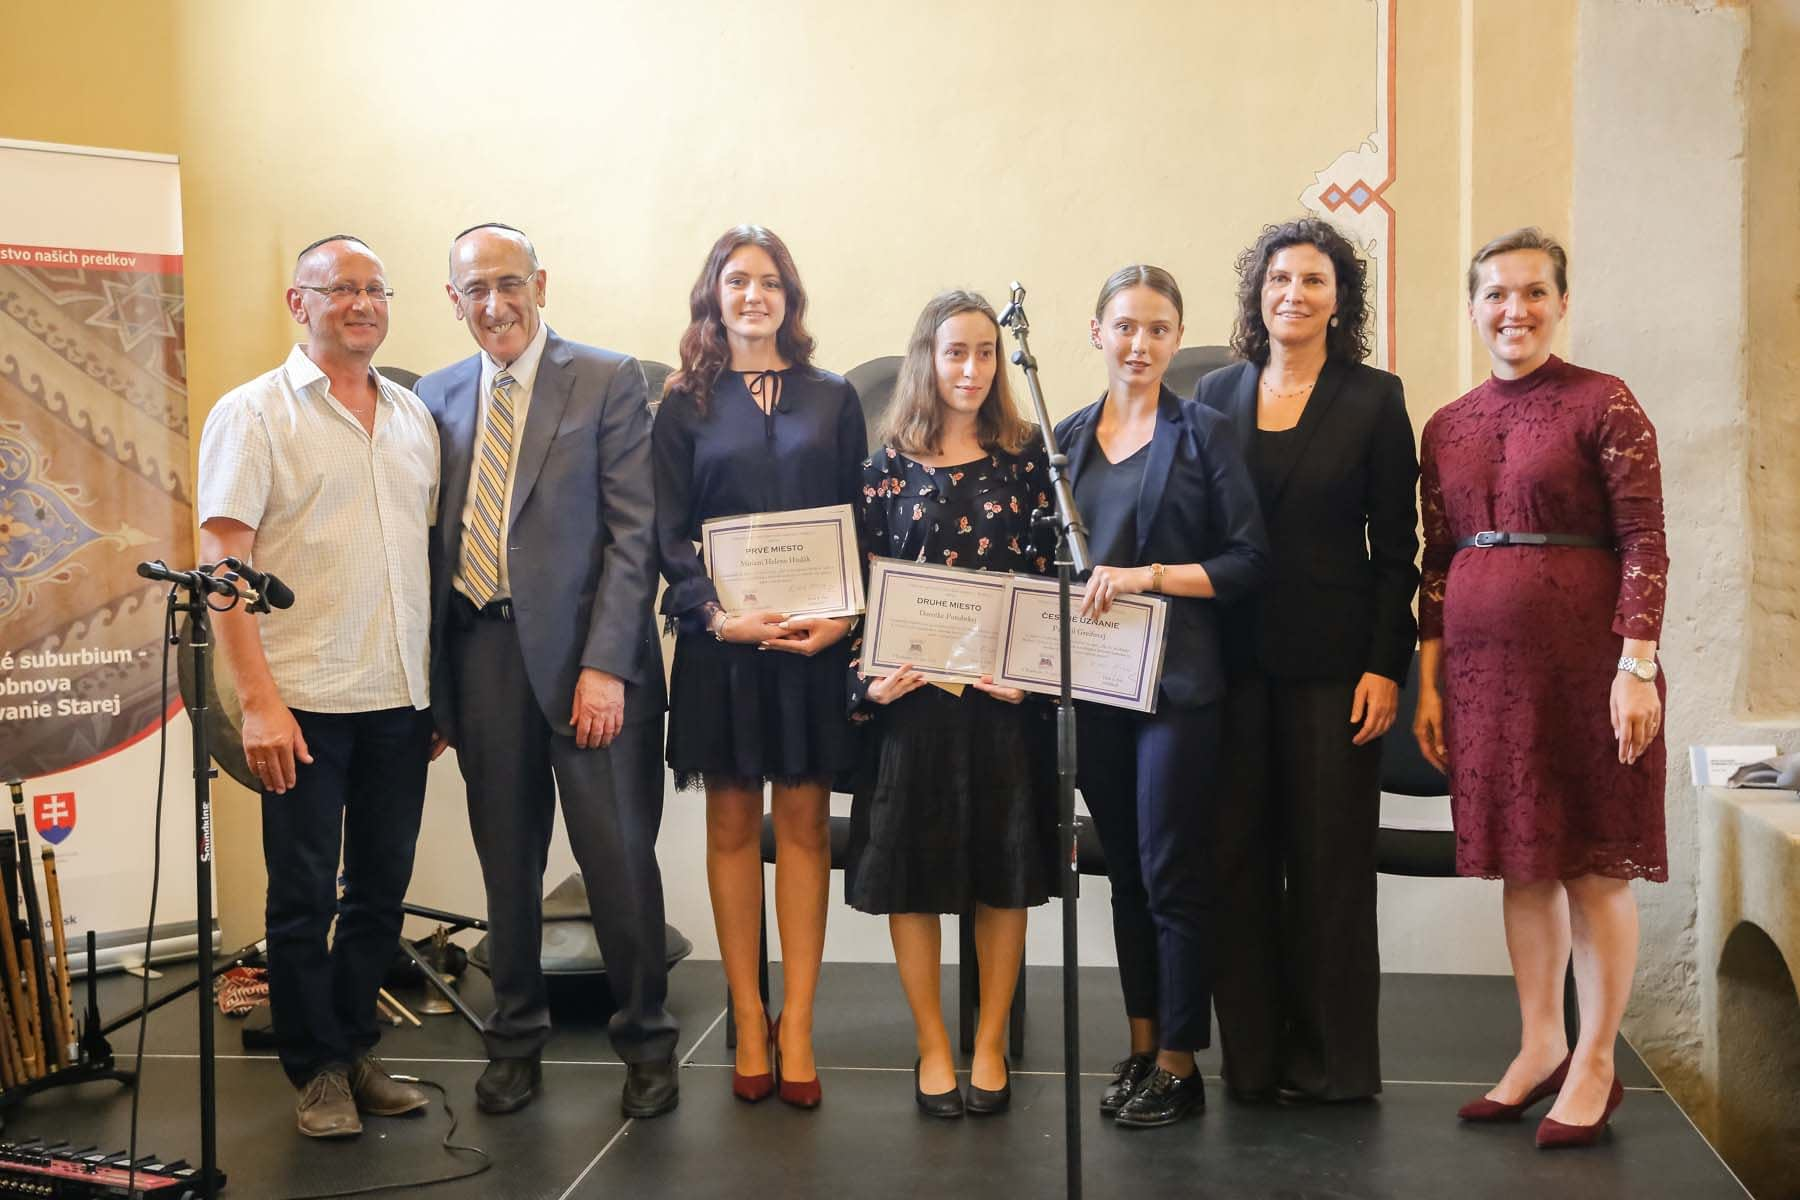 The three winners of the essay contest pose on stage with Mr. Josef Jarina , Mr. Emil Fish, Ms. Orit Stieglitz, and Ms. Anna Humbert